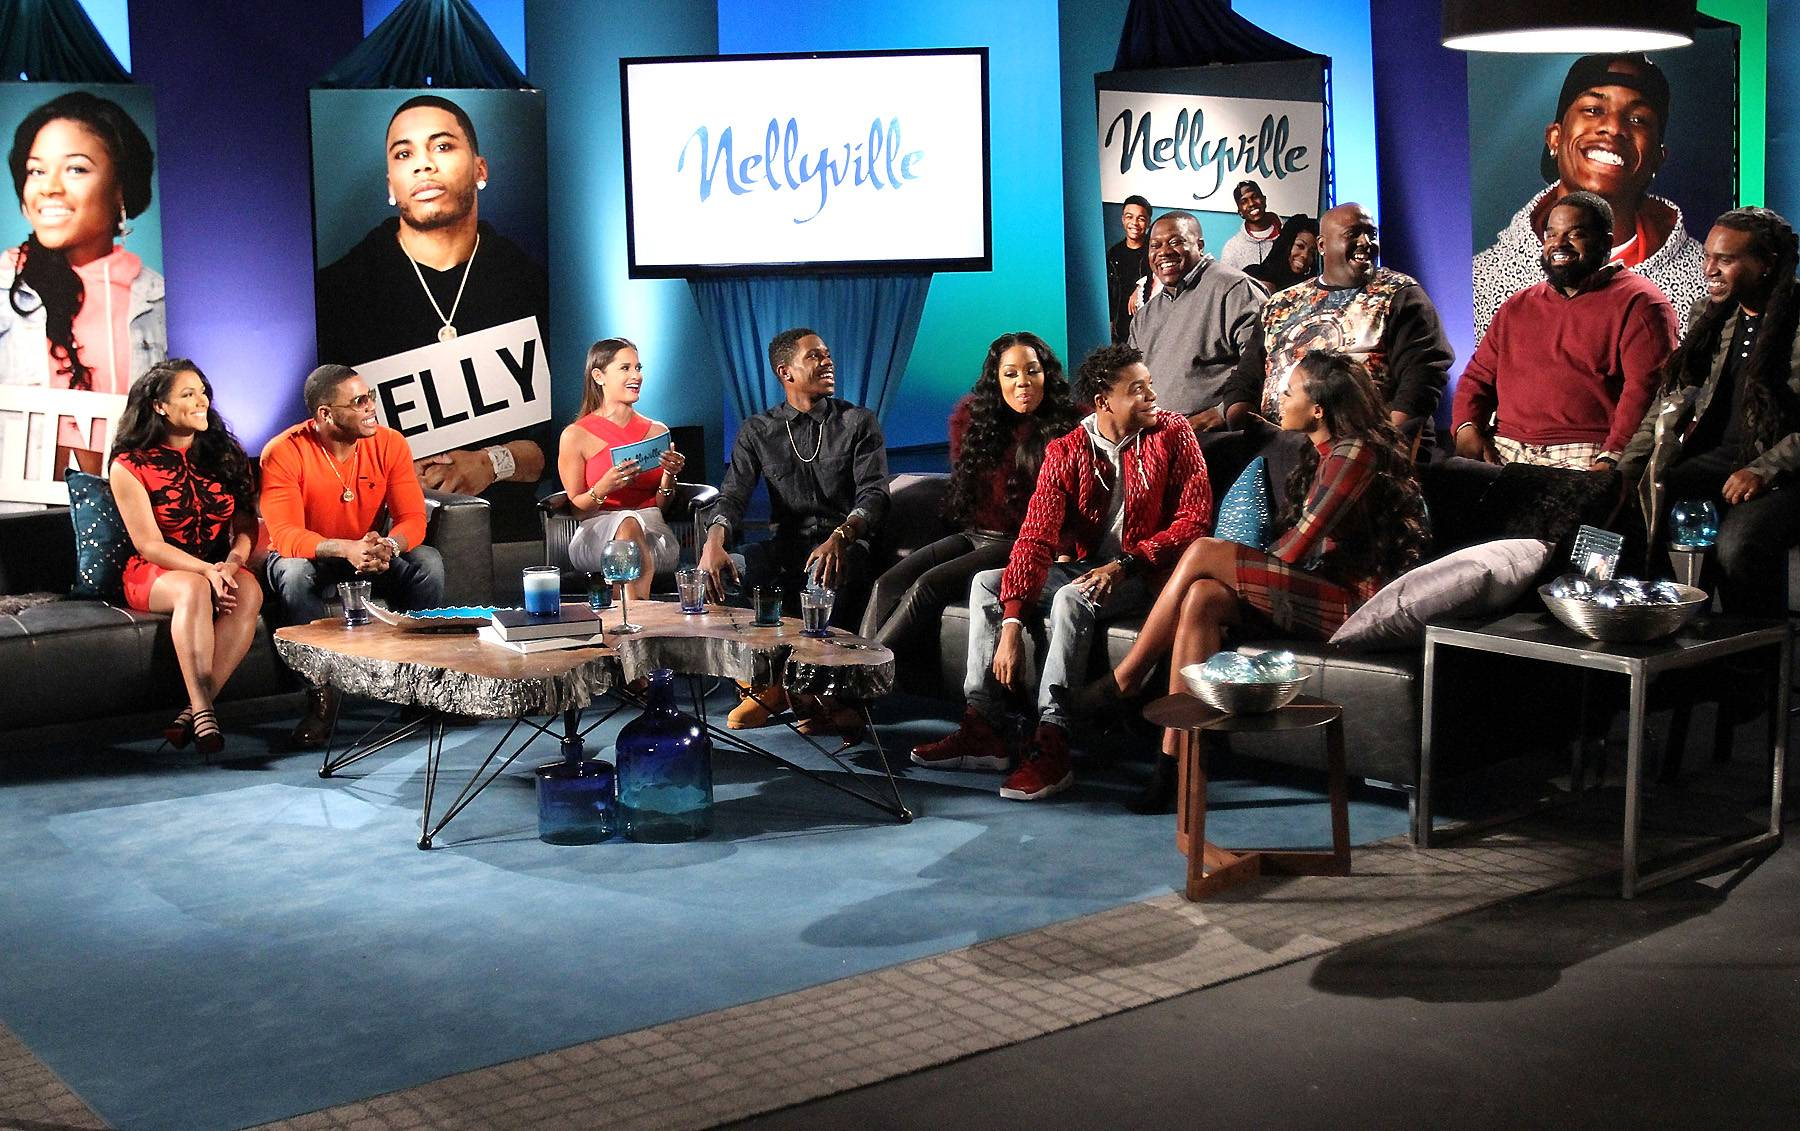 Precious Moments - The Nellyville clan share a laugh at the reunion.   (Photo by Maury Phillips/WireImage)